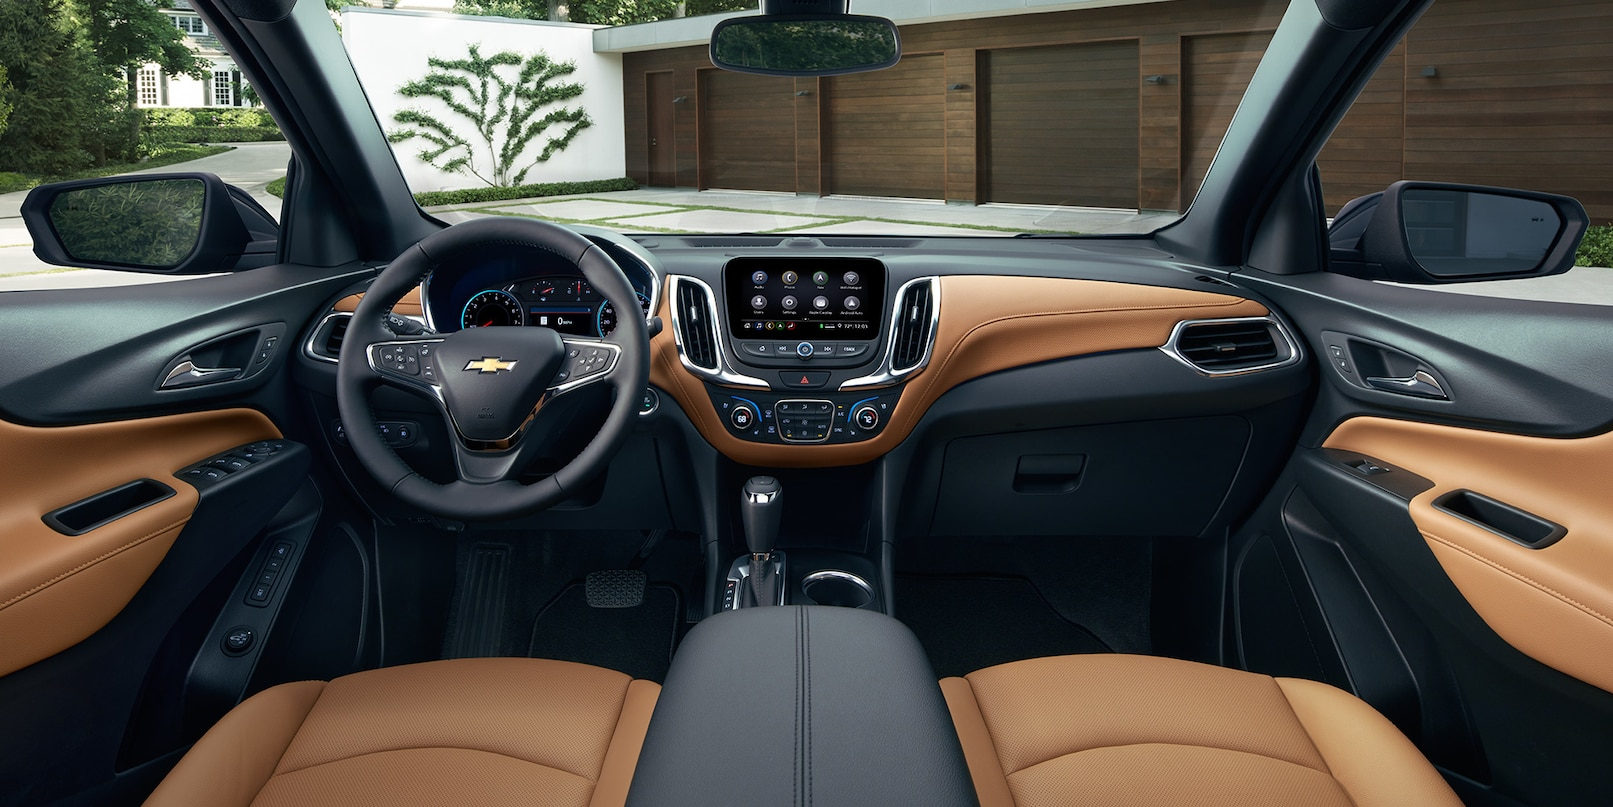 Interior of the 2019 Chevrolet Equinox